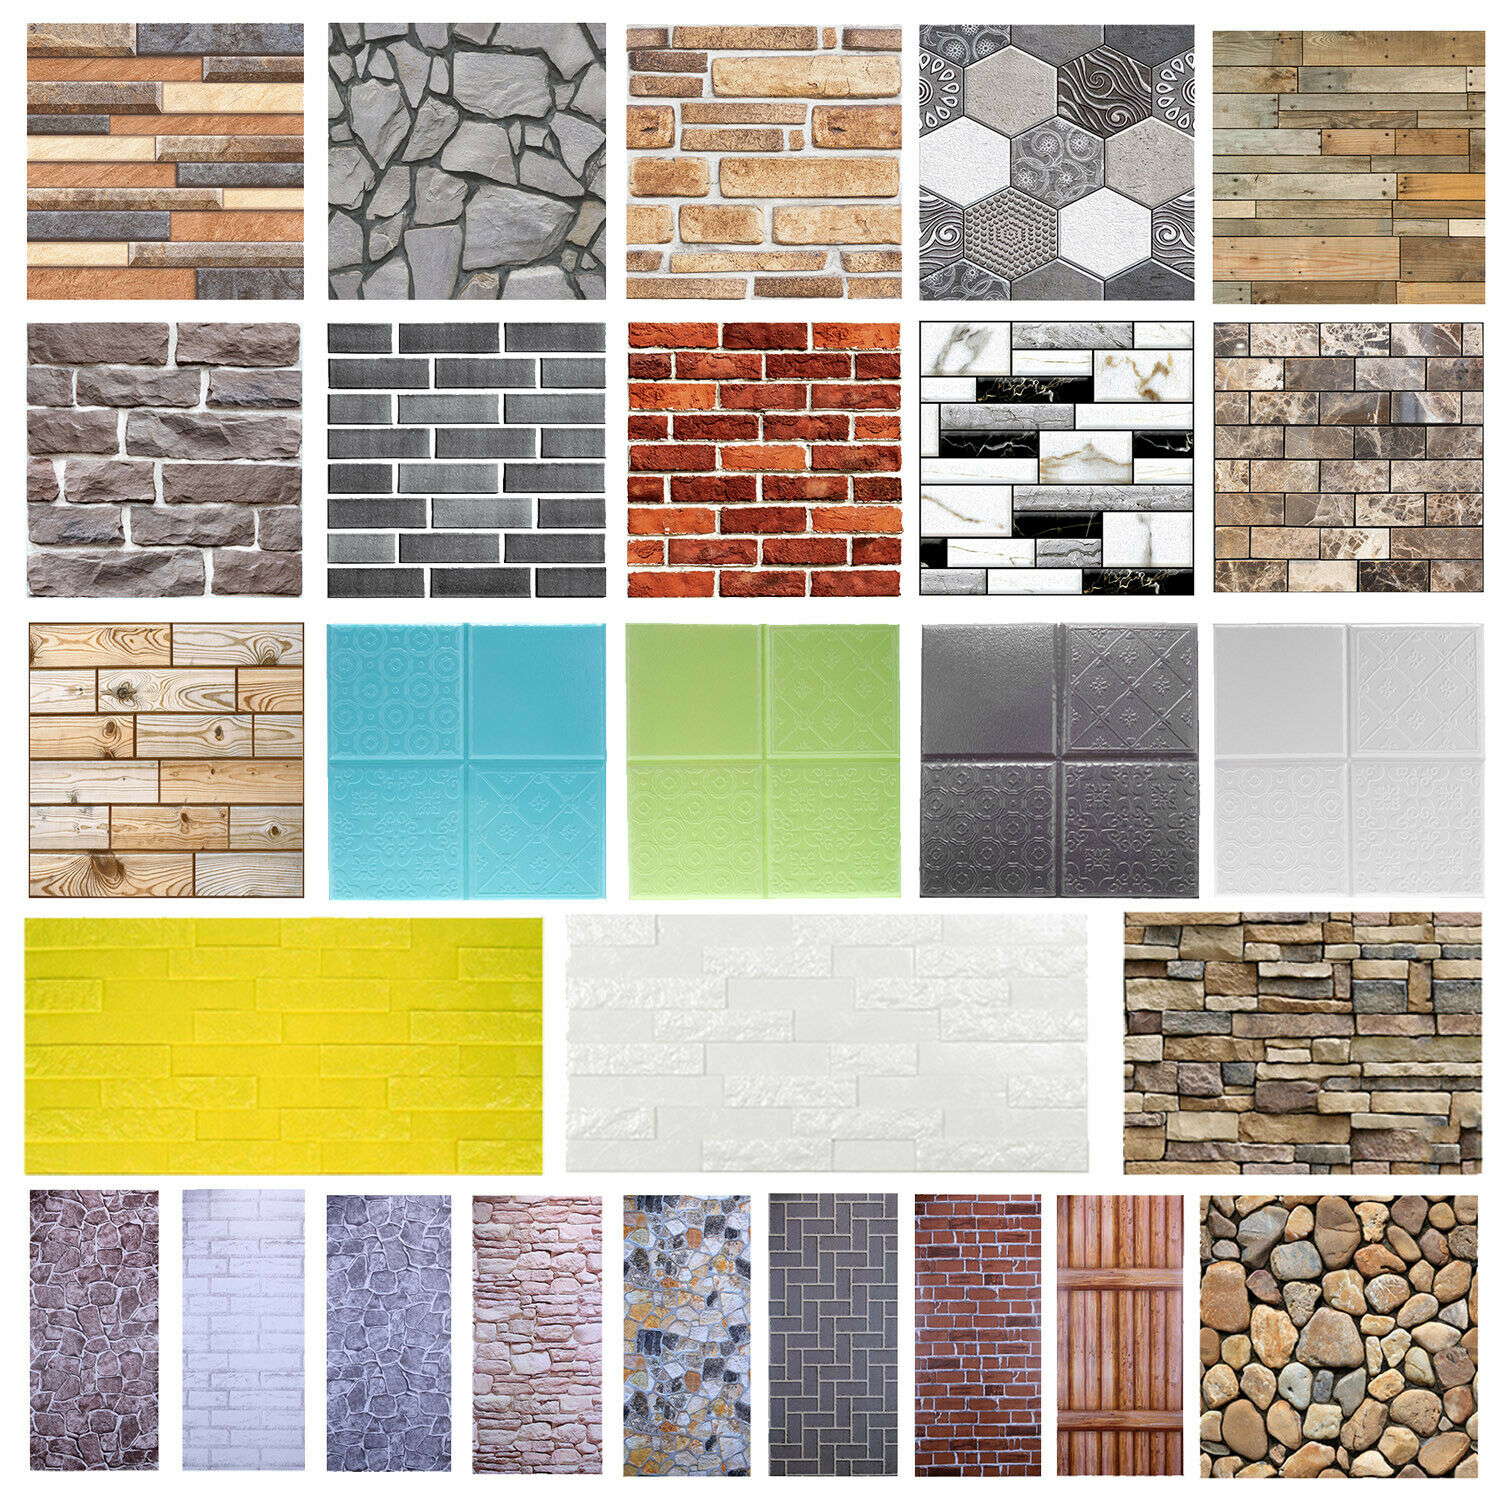 Home Decoration - 3D Wall Paper Brick Stone Rustic Effect Home Decor Self-adhesive Wall Sticker